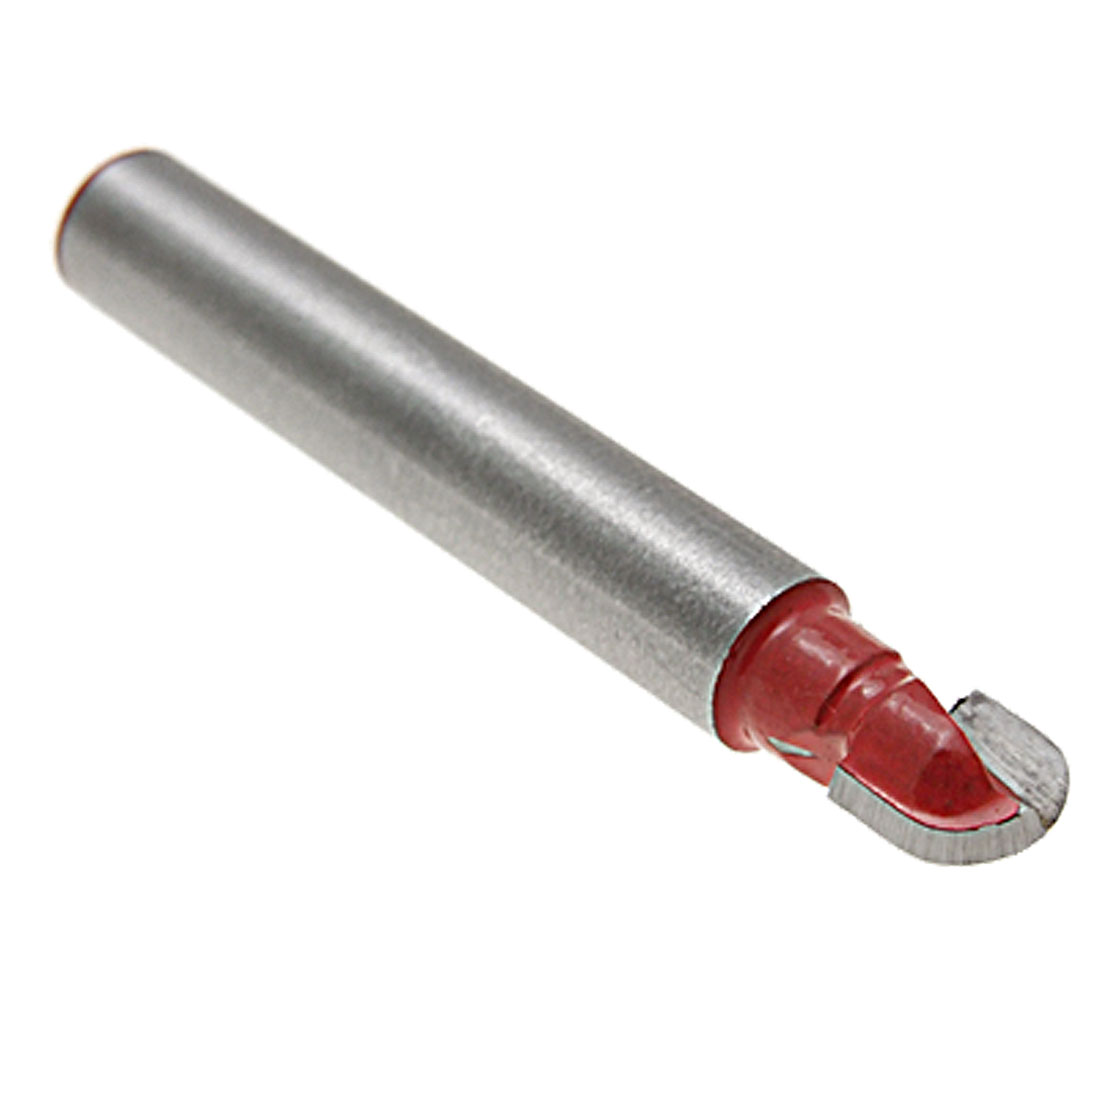 "Sharp Cove Box Router Bit Moulding Tool 1/4"" x 1/4"""